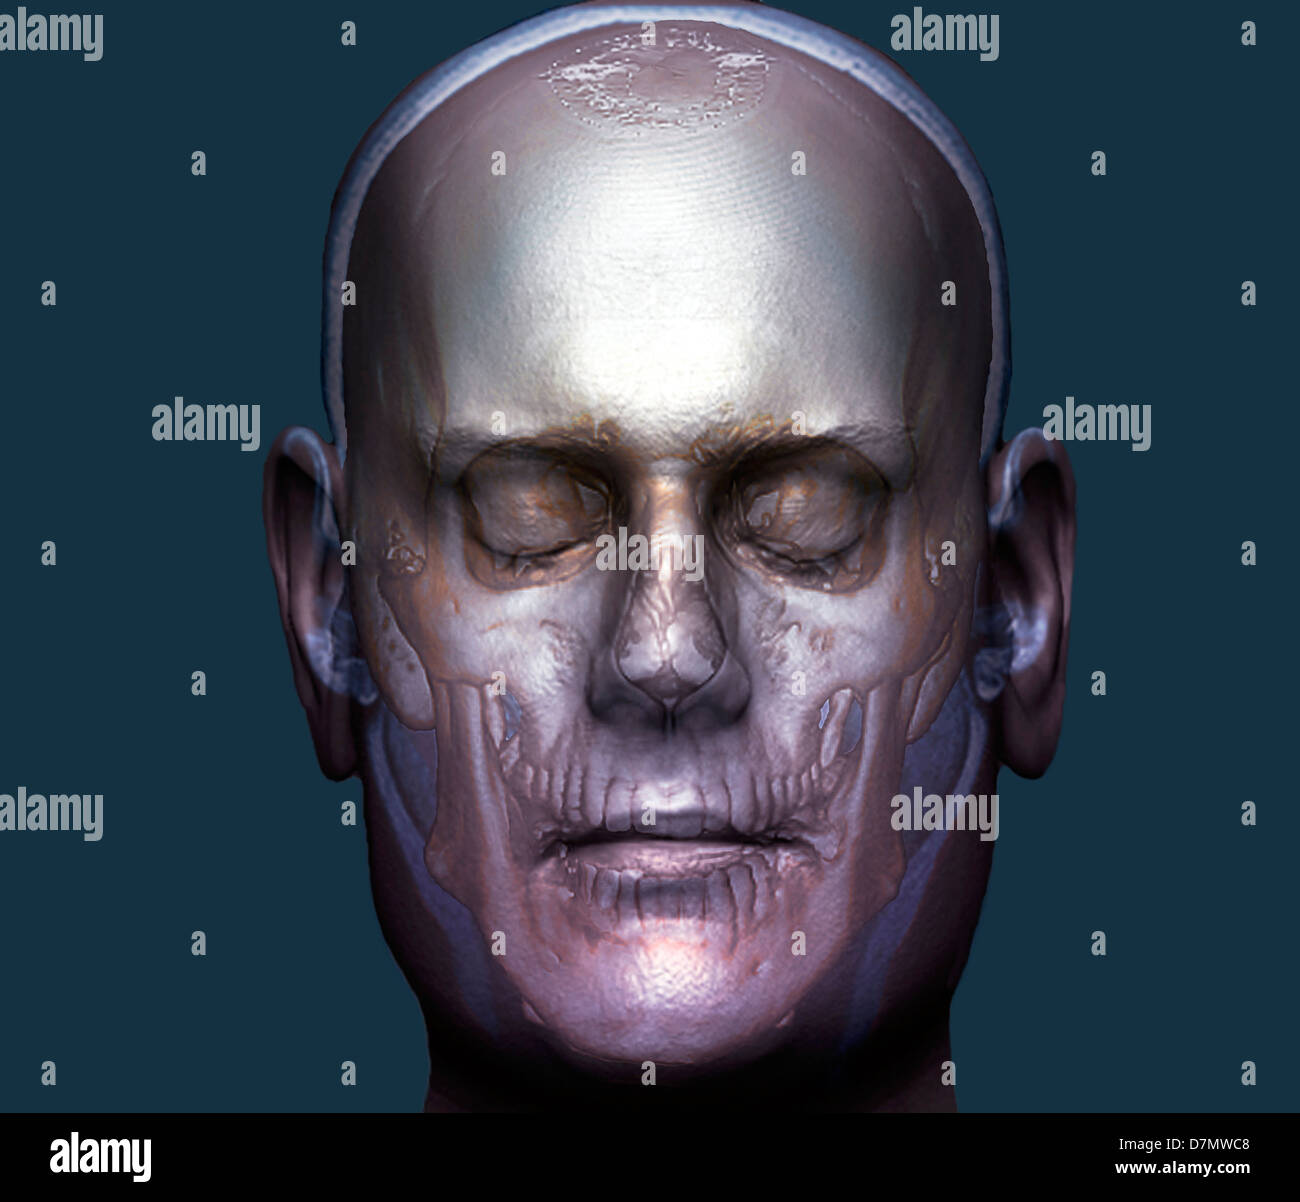 Human head, 3D CT scan - Stock Image